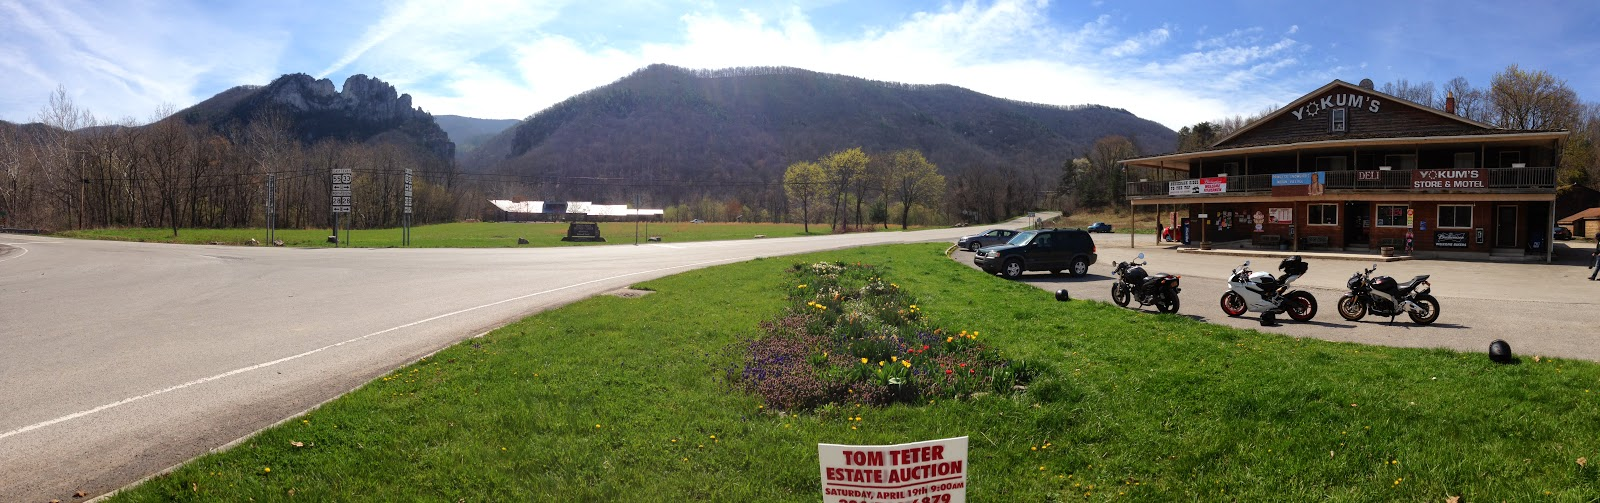 Ducati 899 Panigale, Tigho's Monster, Aprilia Tuono V4R motorcycles in front Seneca Rocks West Virginia panorama